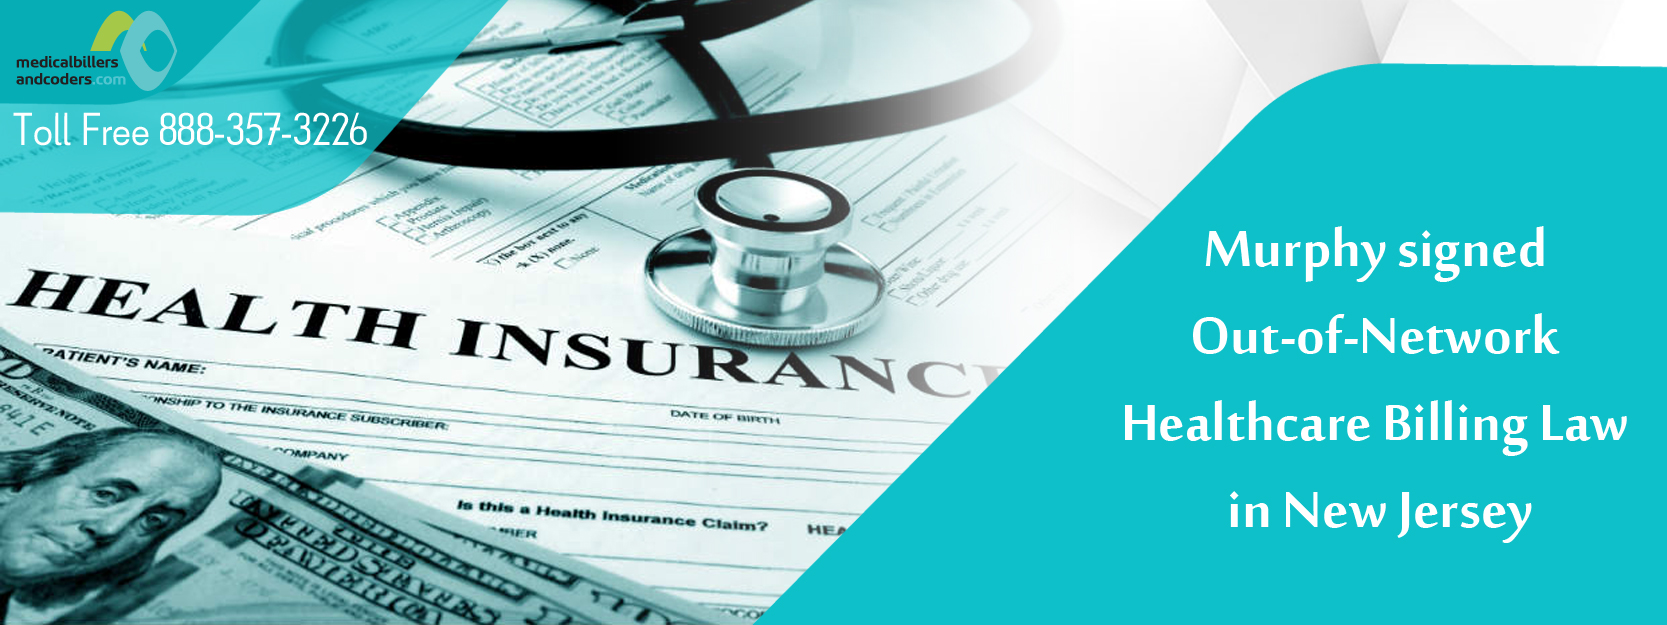 blog-murphy-signed-out-of-network-healthcare-billing-law-in-new-jersey